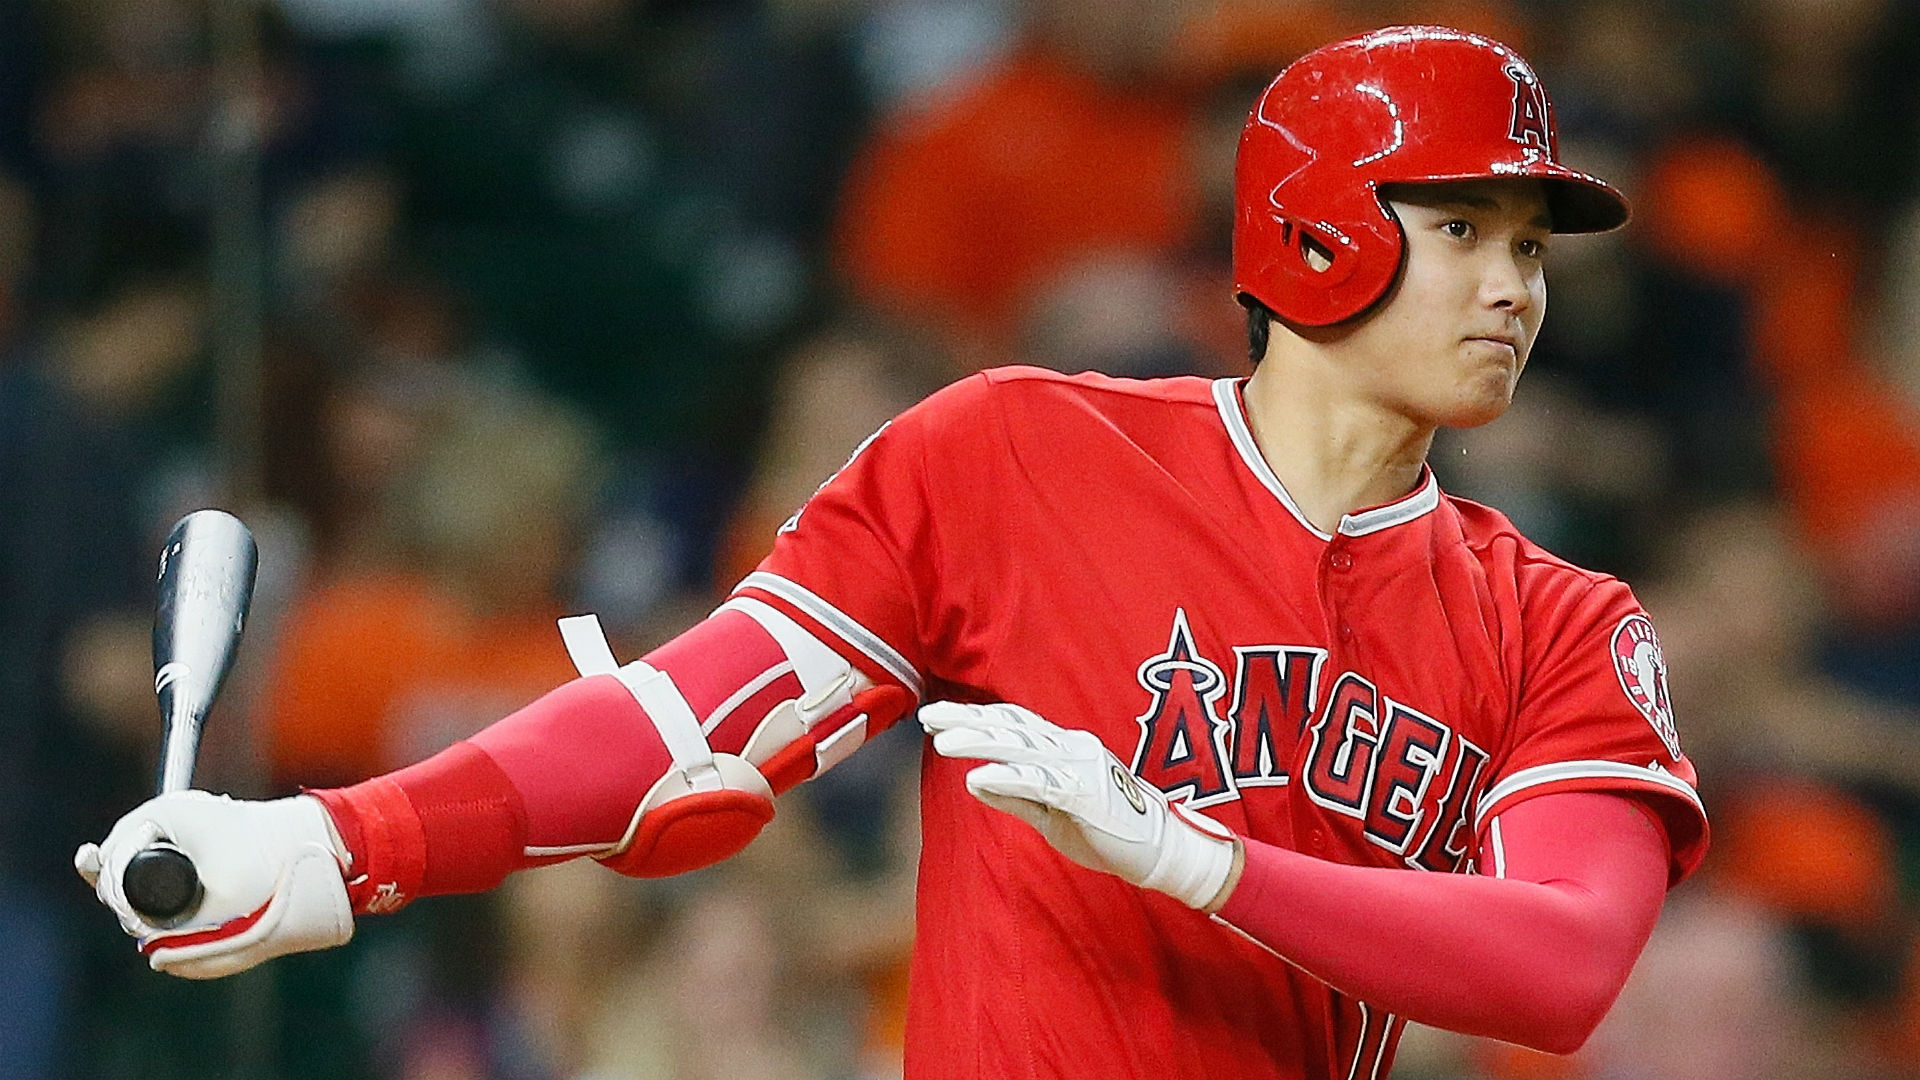 reputable site f853d 3af3f Shohei Ohtani injury update: Two-way player could return to ...